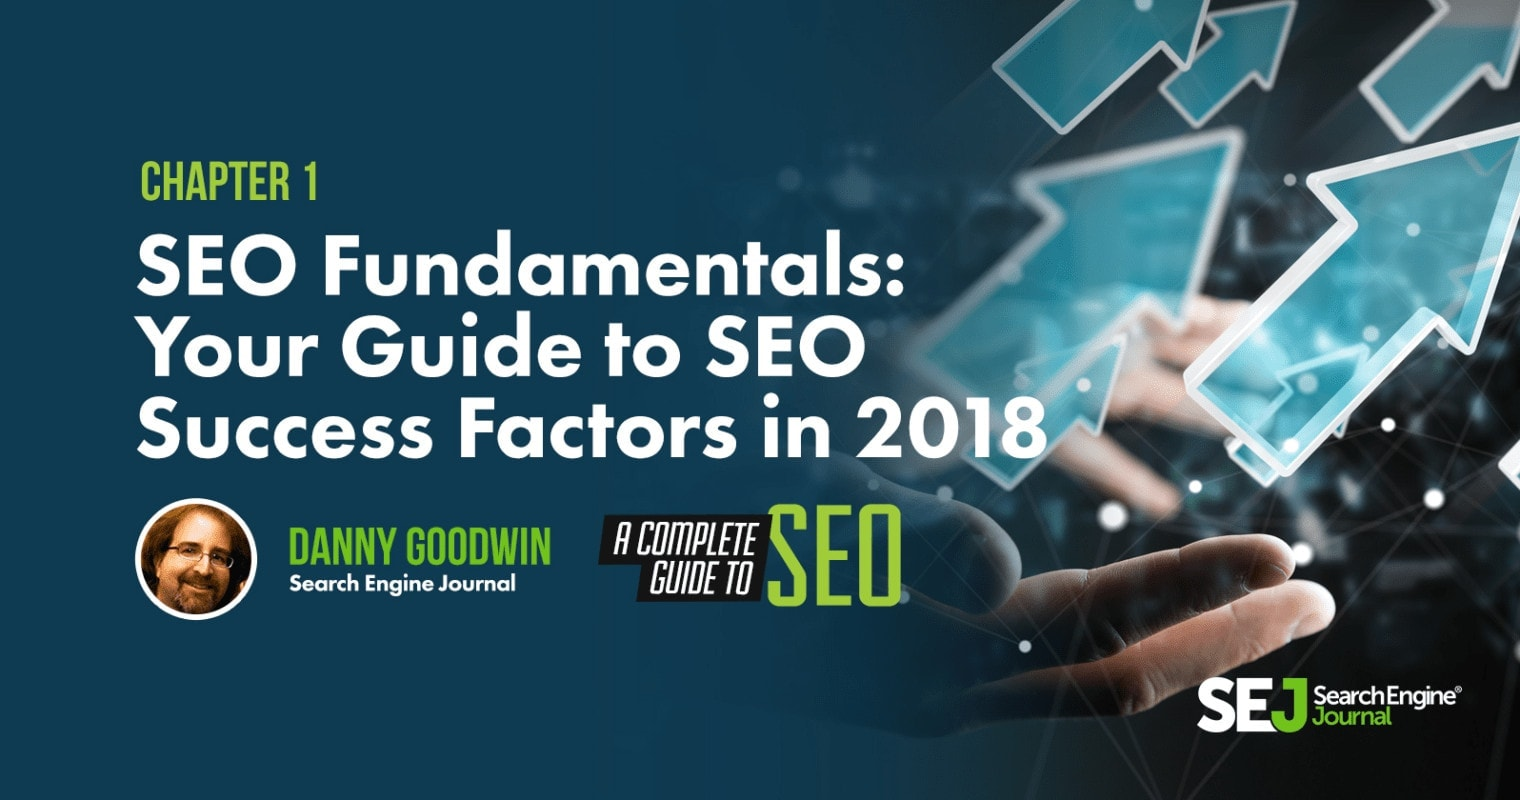 SEO Fundamentals: Your Guide to SEO Success Factors in 2018